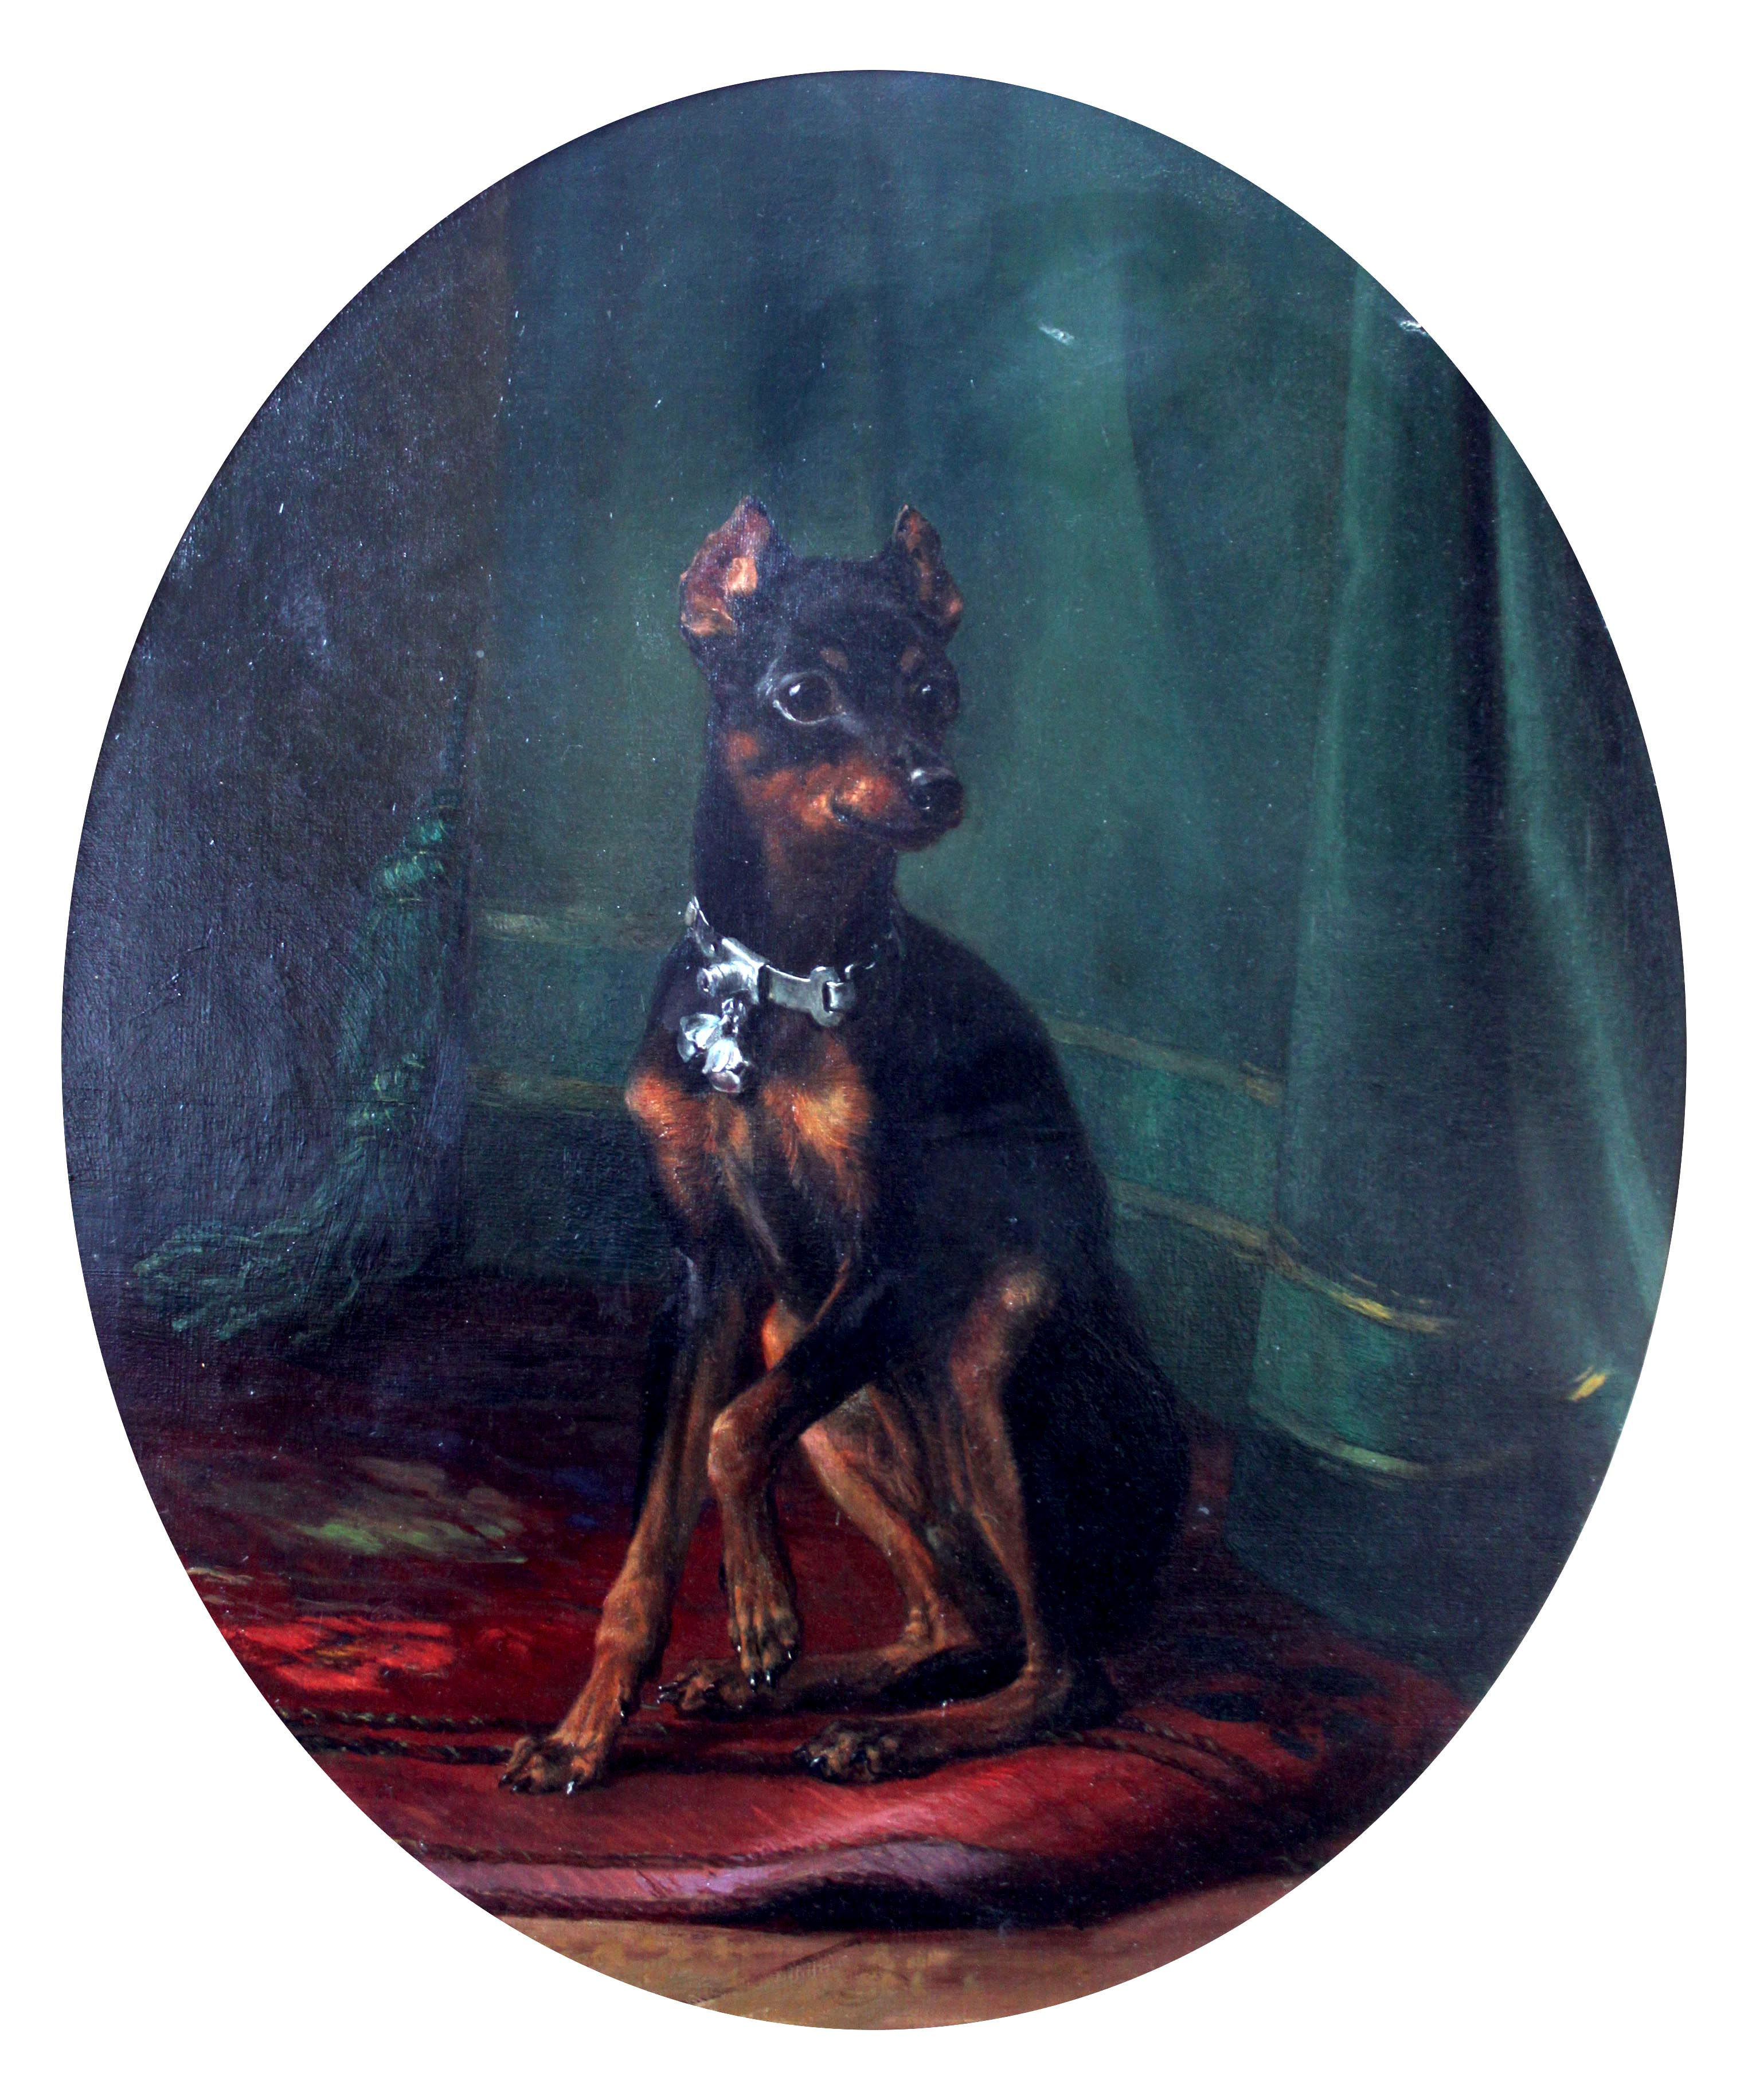 Click to see full size: Manchester terrier by Carl Frederick Deiker- Manchester terrier by Carl Frederick Deiker